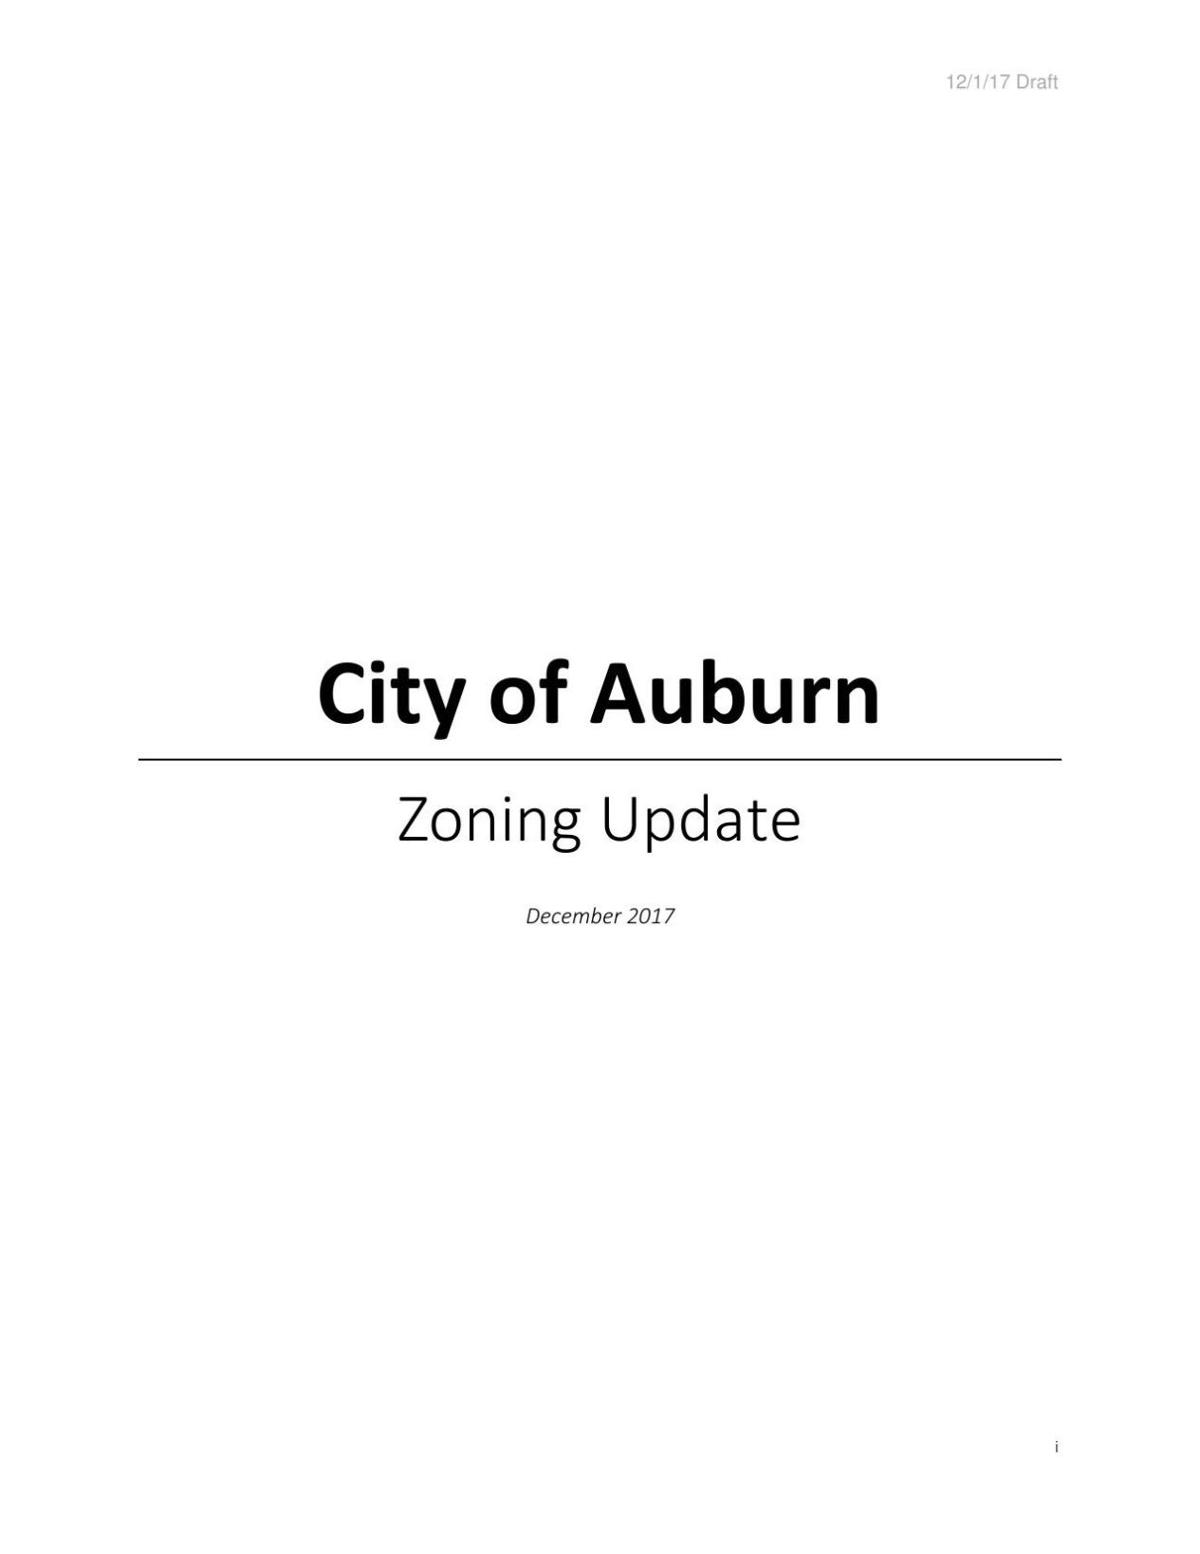 City of Auburn zoning code final draft